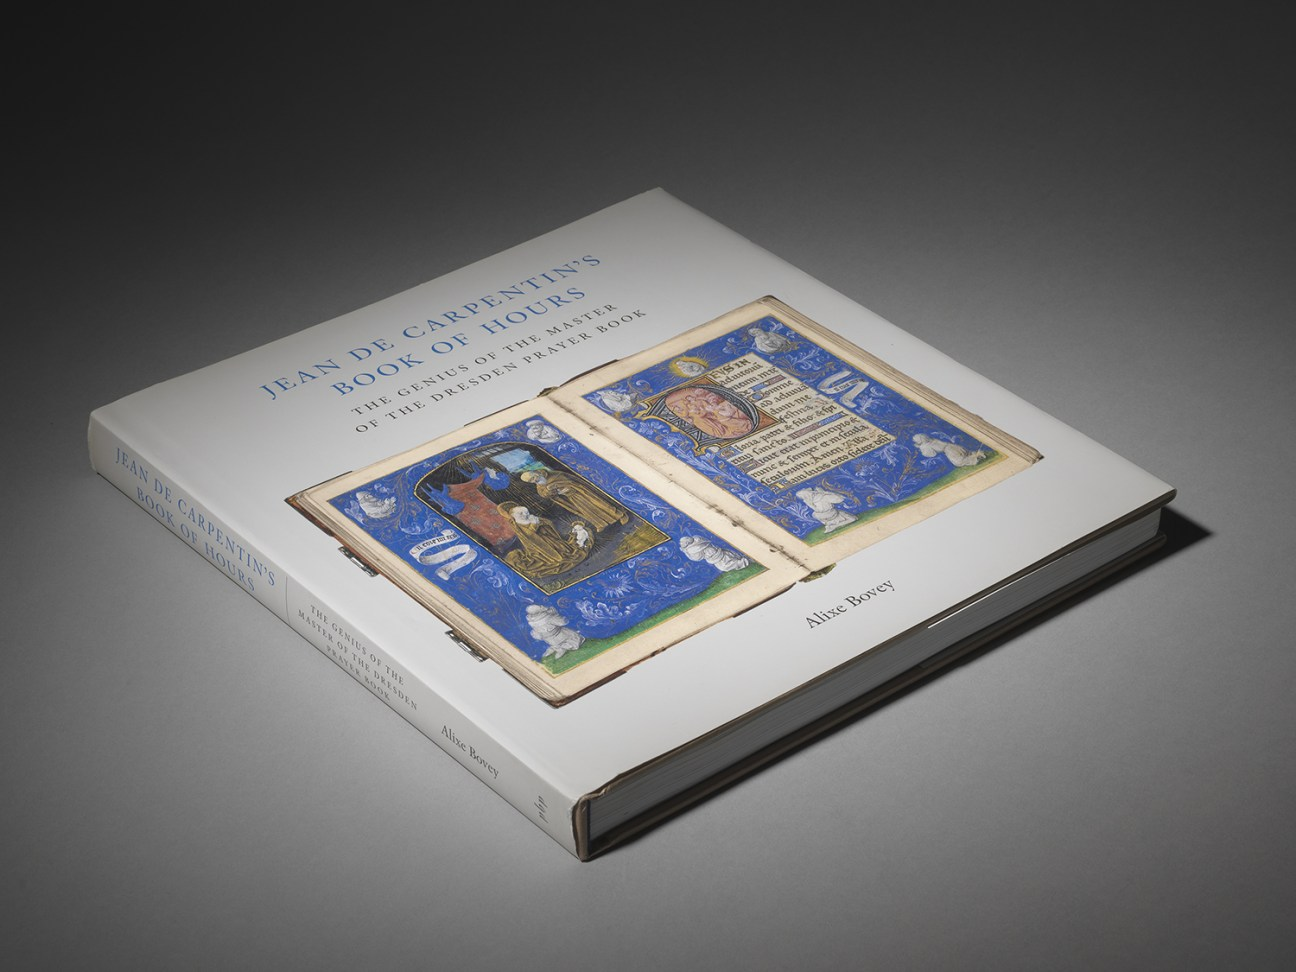 Jean de Carpentin's Book of Hours, The Genius of the Master of the Dresden Prayer Book. Alixe Bovey, 2011.